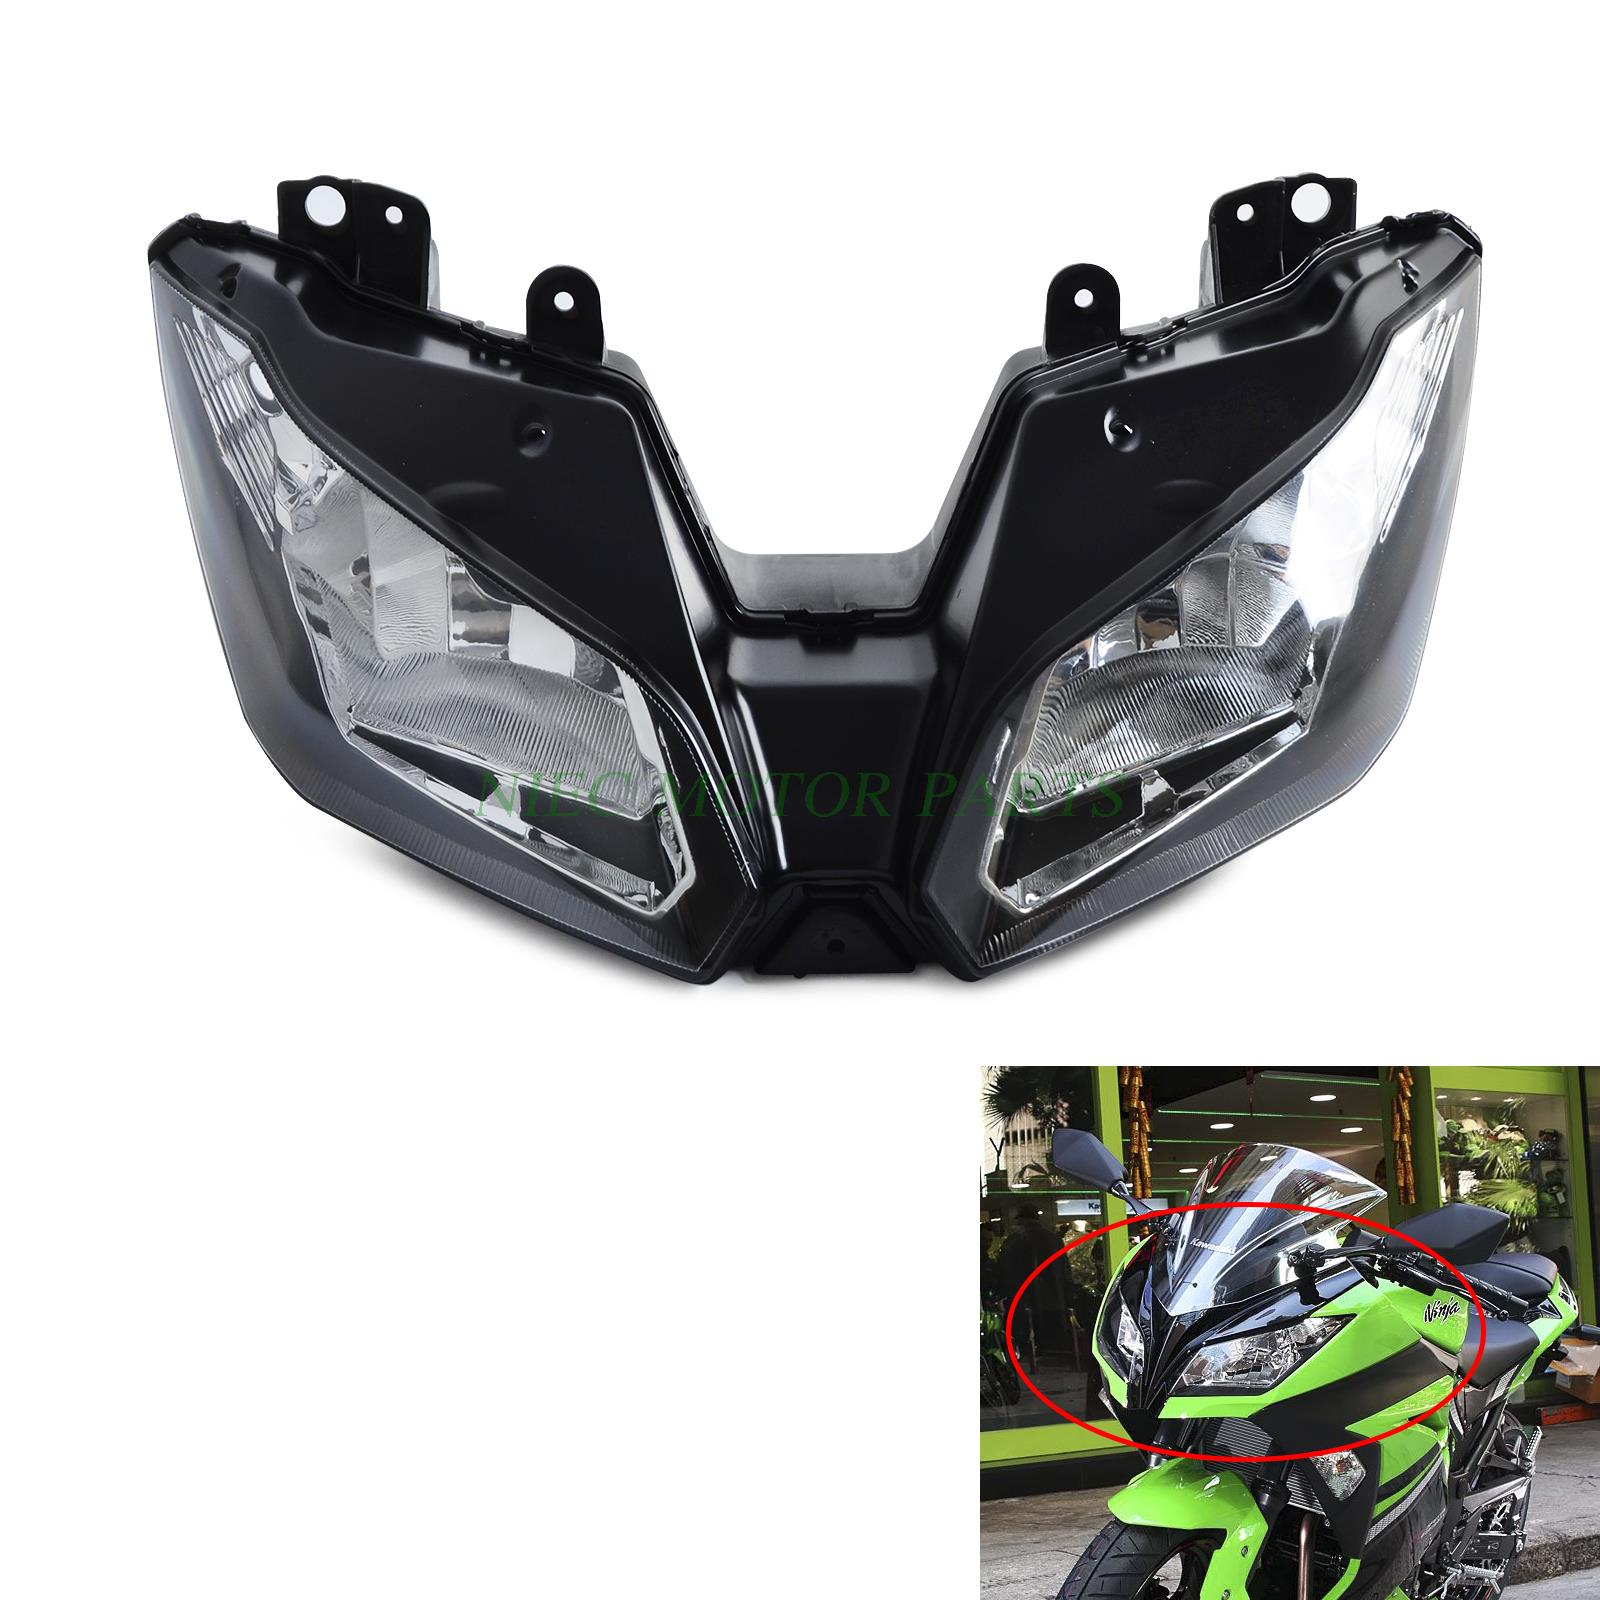 цены Motorcycle Headlights Headlamp Head Light Lamp Assembly For Kawasaki NINJA 300 ABS EX300 2013-2016 VERSYS 650 1000 2015 2016